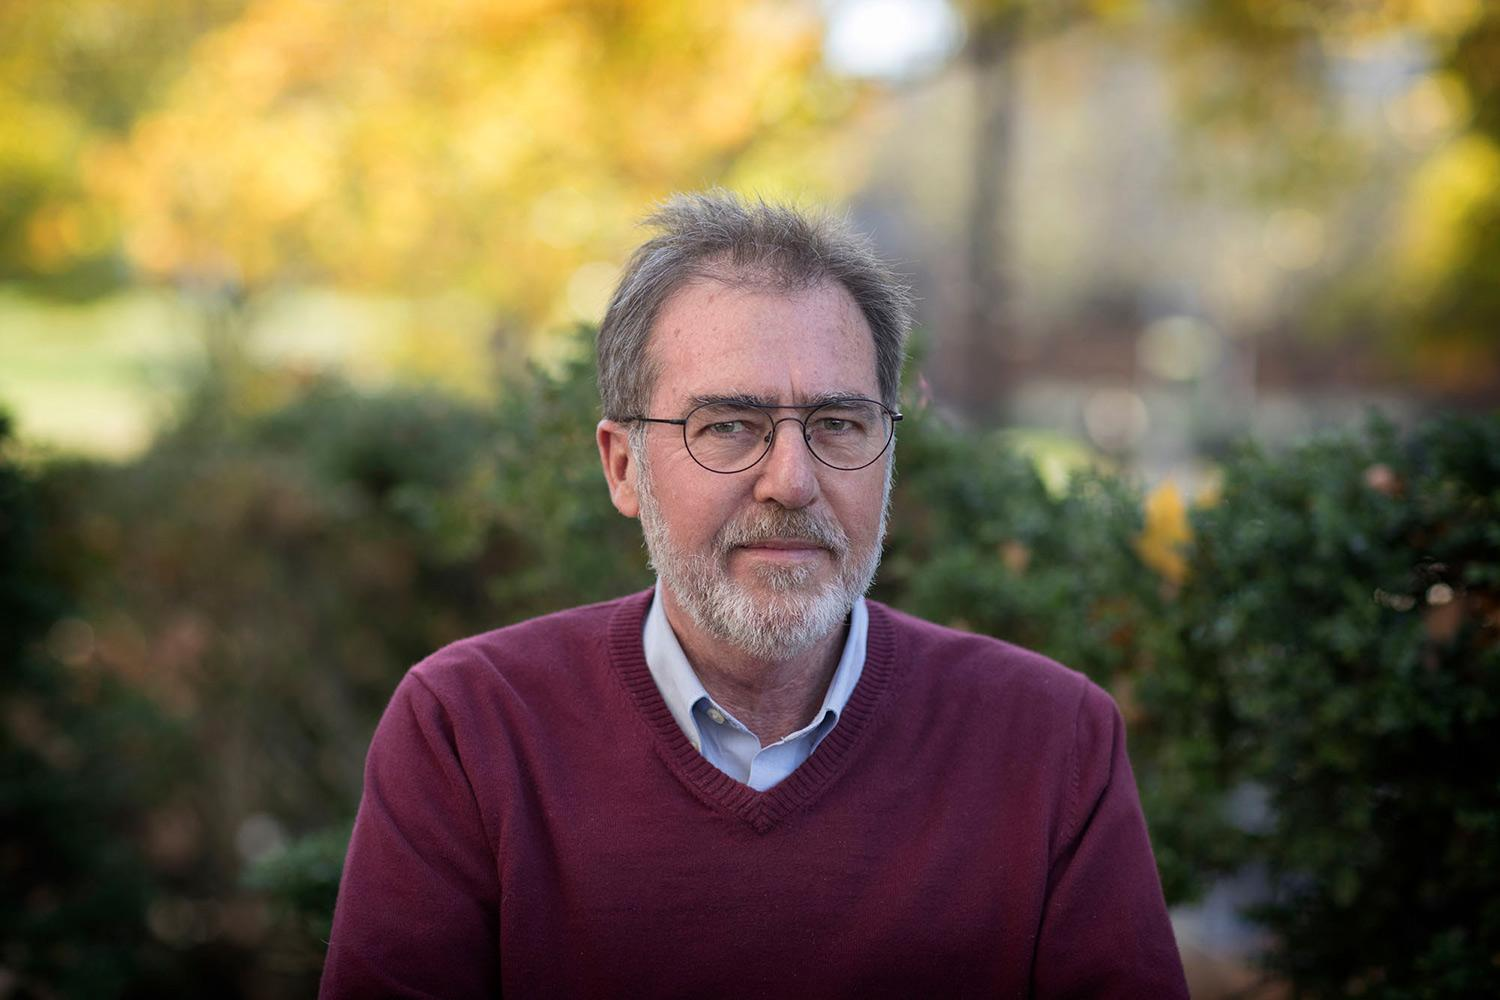 Daniel Pitti, who has led the development of the Social Networks and Archival Context digital tool since its inception in 2010, will continue to serve as director of the SNAC Cooperative.